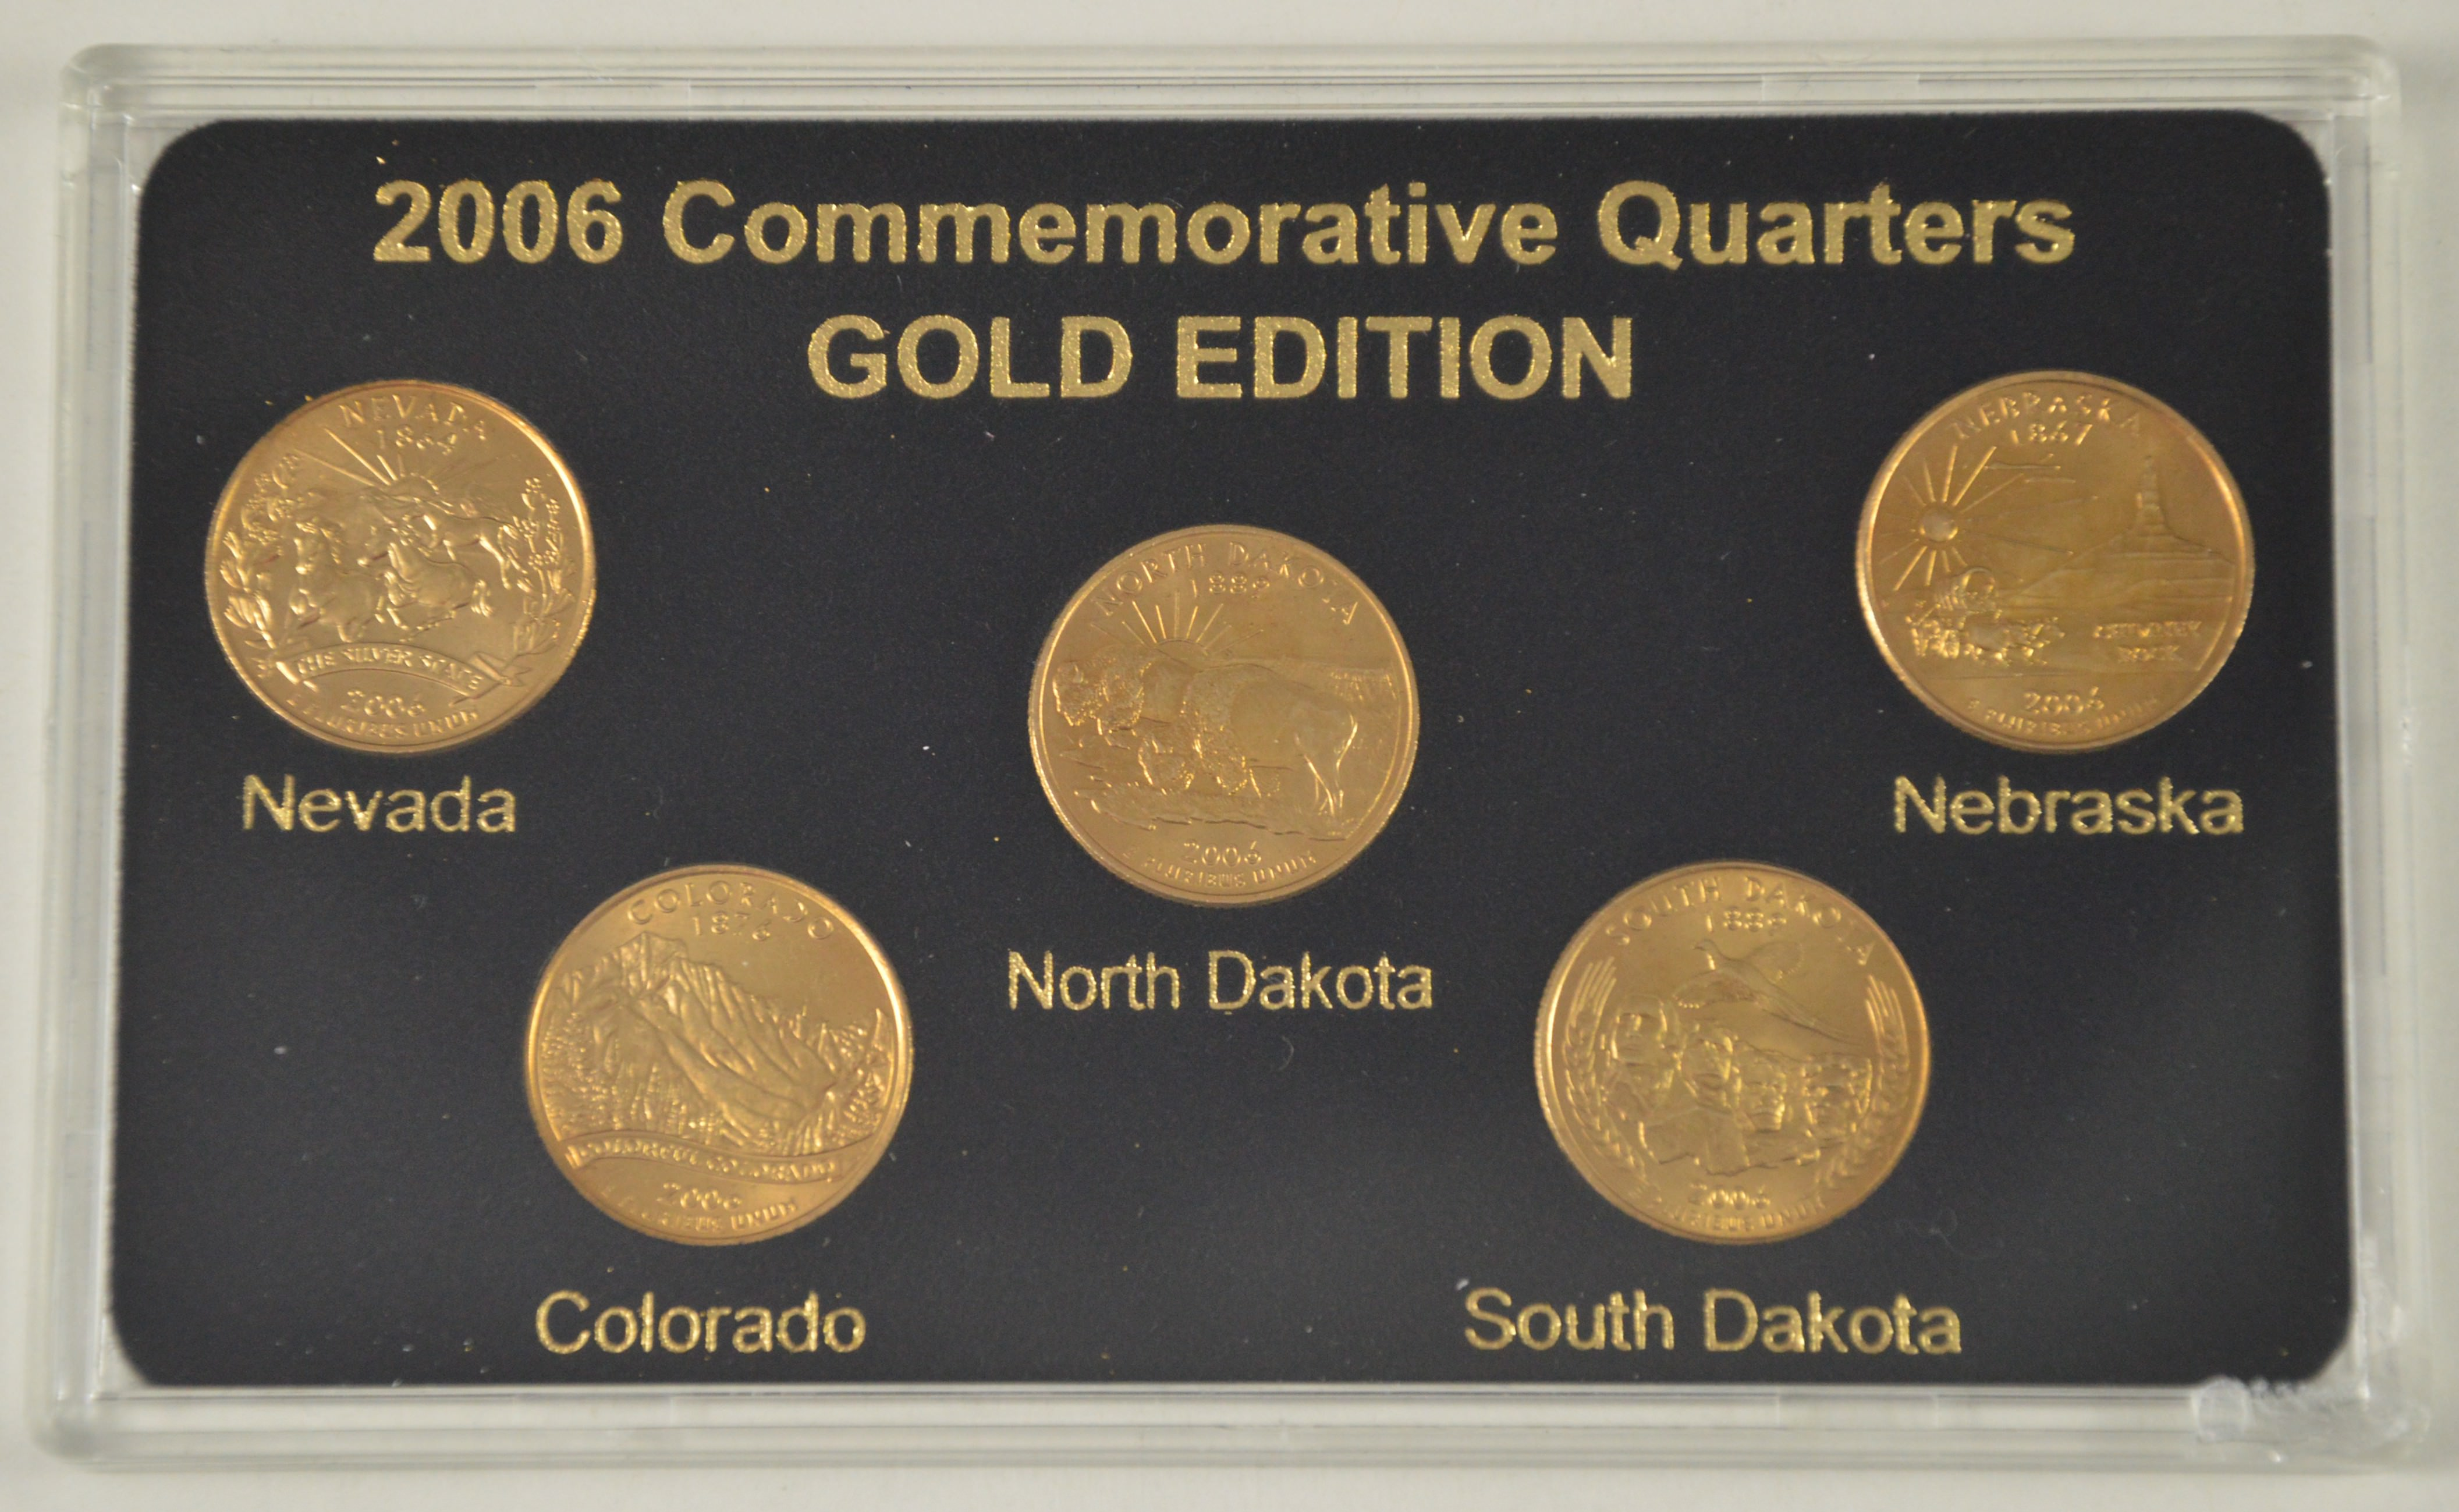 Historic coin collection 2006 commemorative state quarters gold.